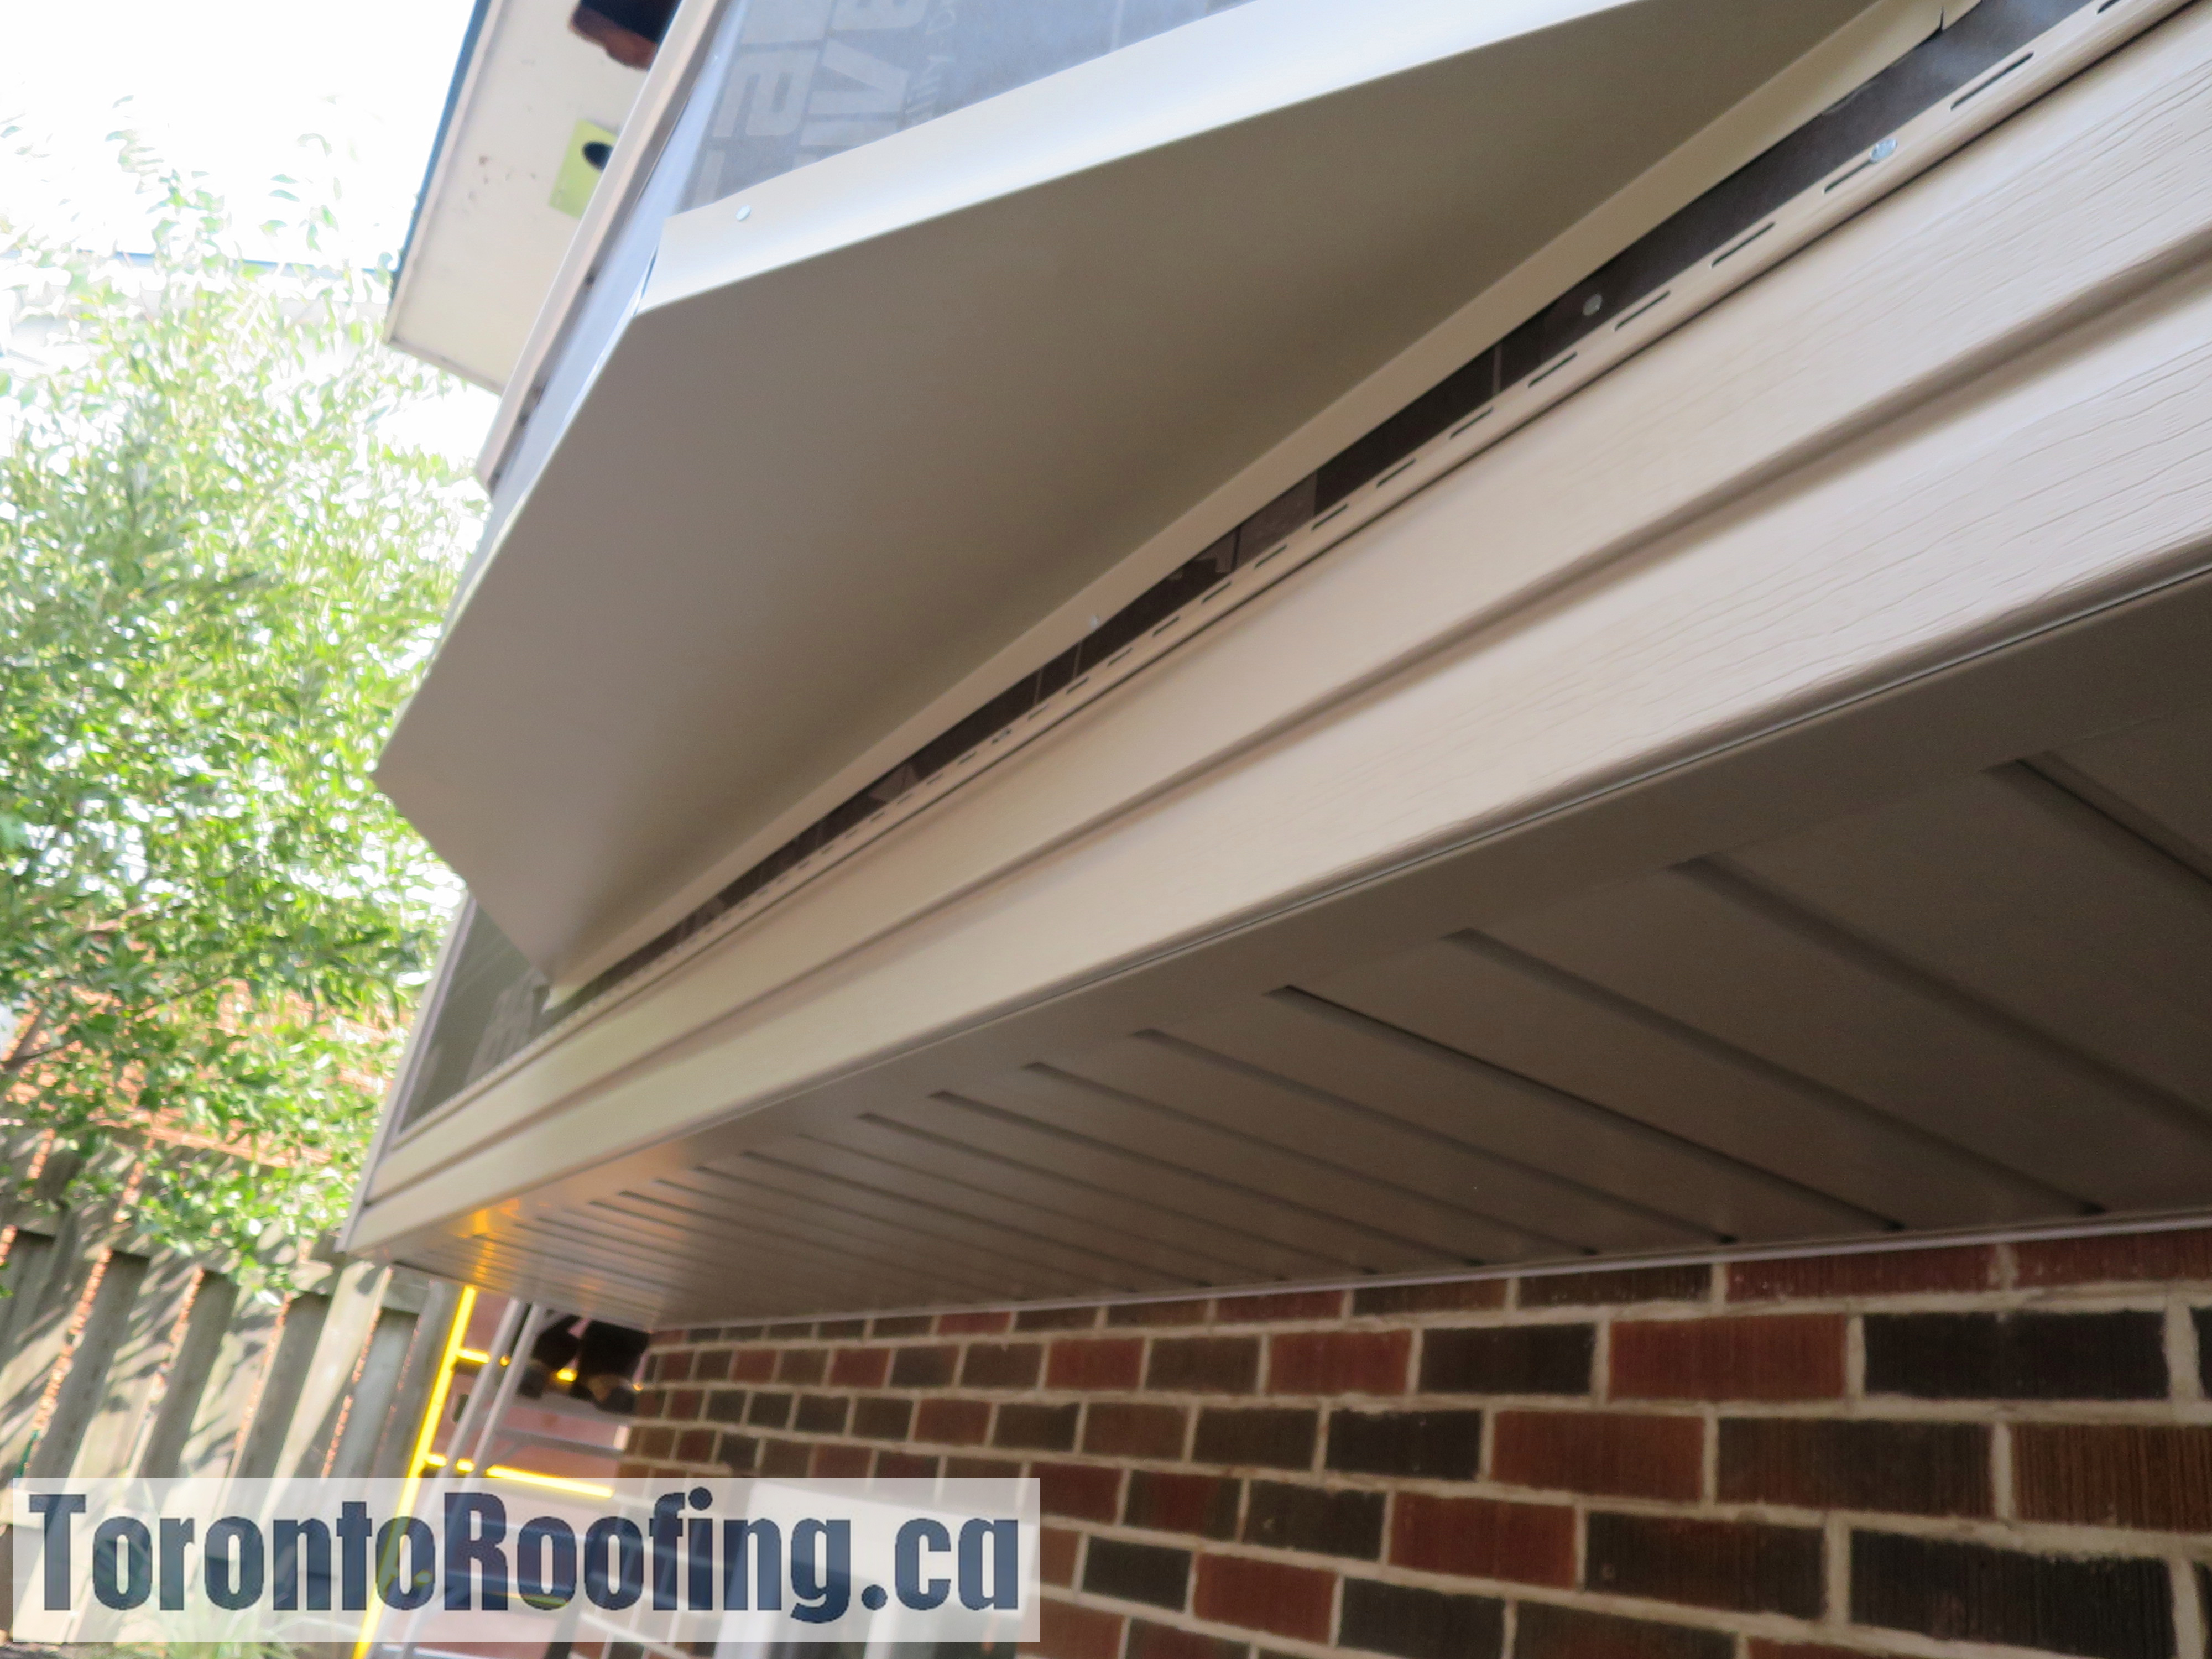 Roofing Siding Eavestrough Gutters Soffit Fascia In Burlington Torontoroofing Ca